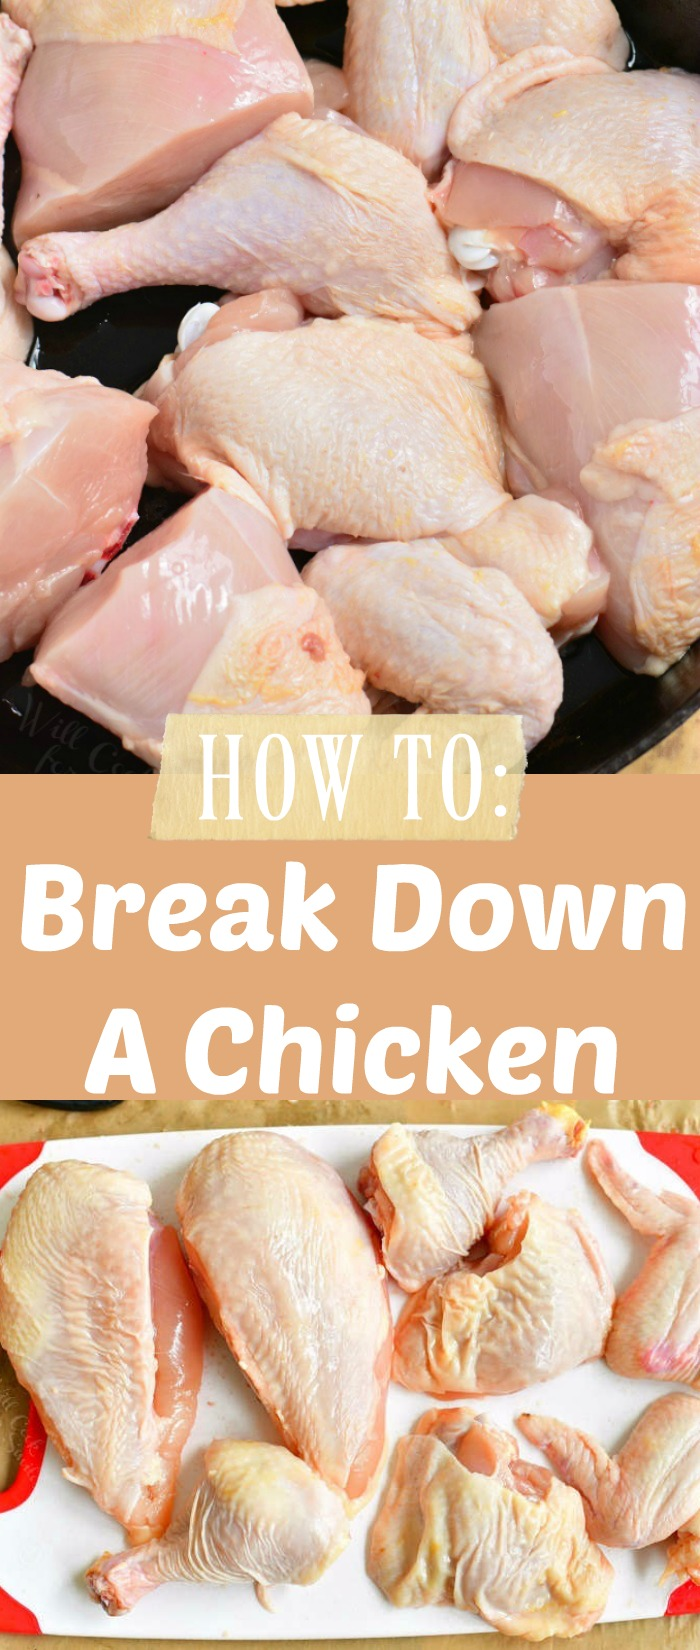 Learn how to easily break down a whole chicken like a pro. It's much easier than you think to break down a chicken and only takes about 10 minutes. This is a great skill to have for your culinary adventures.  #chicken #wholechicken #breakdownchicken #cooking #dinner #easydinner